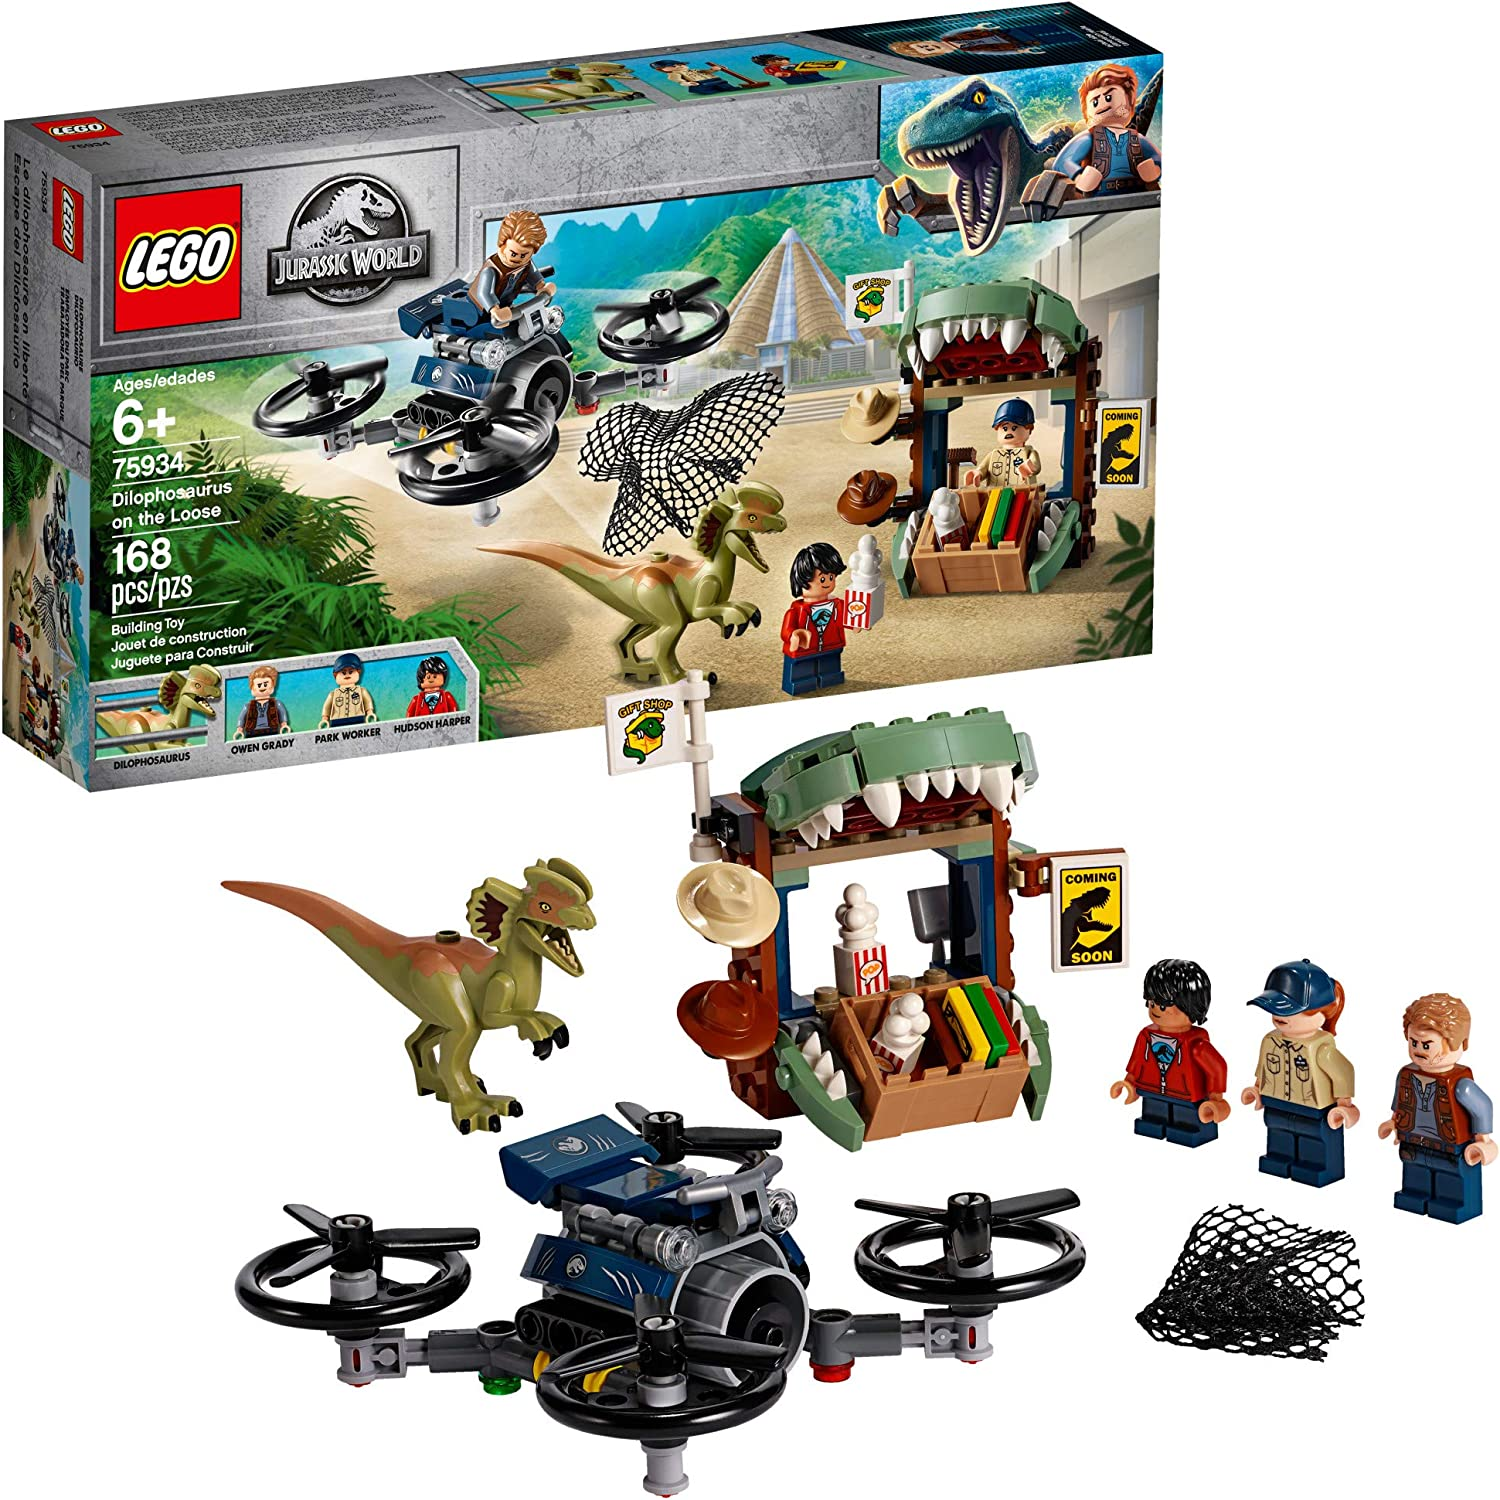 LEGO Jurassic World Dilophosaurus on The Loose 75934 Building Kit (168 Pieces)